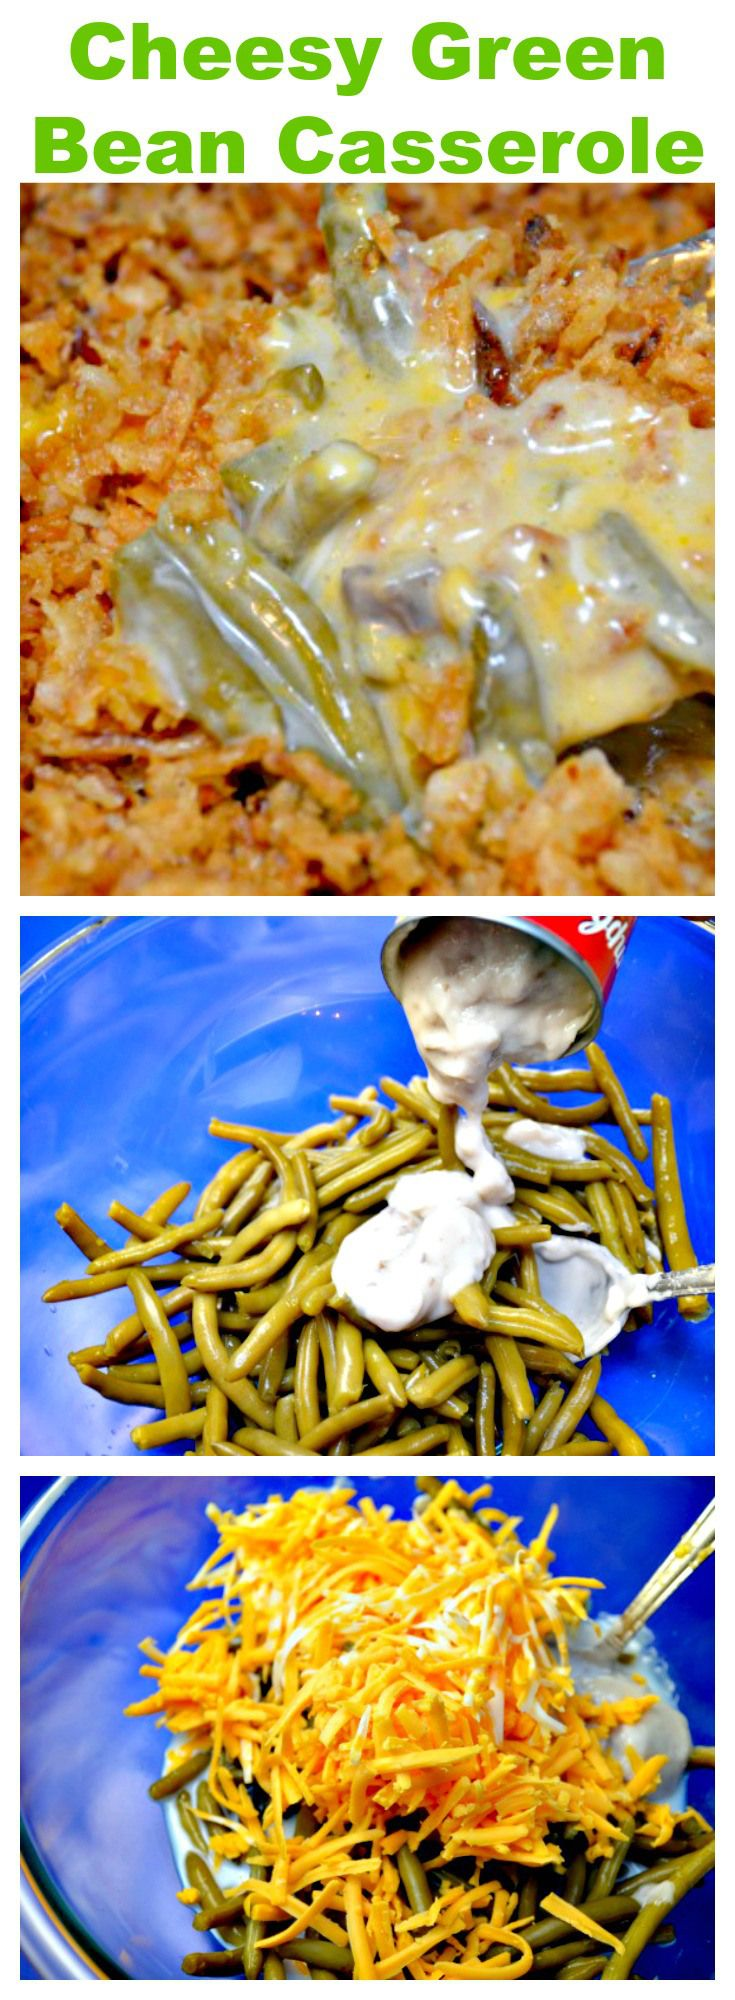 Green Bean Casserole is a Thanksgiving tradition at most homes.  I kicked up the…